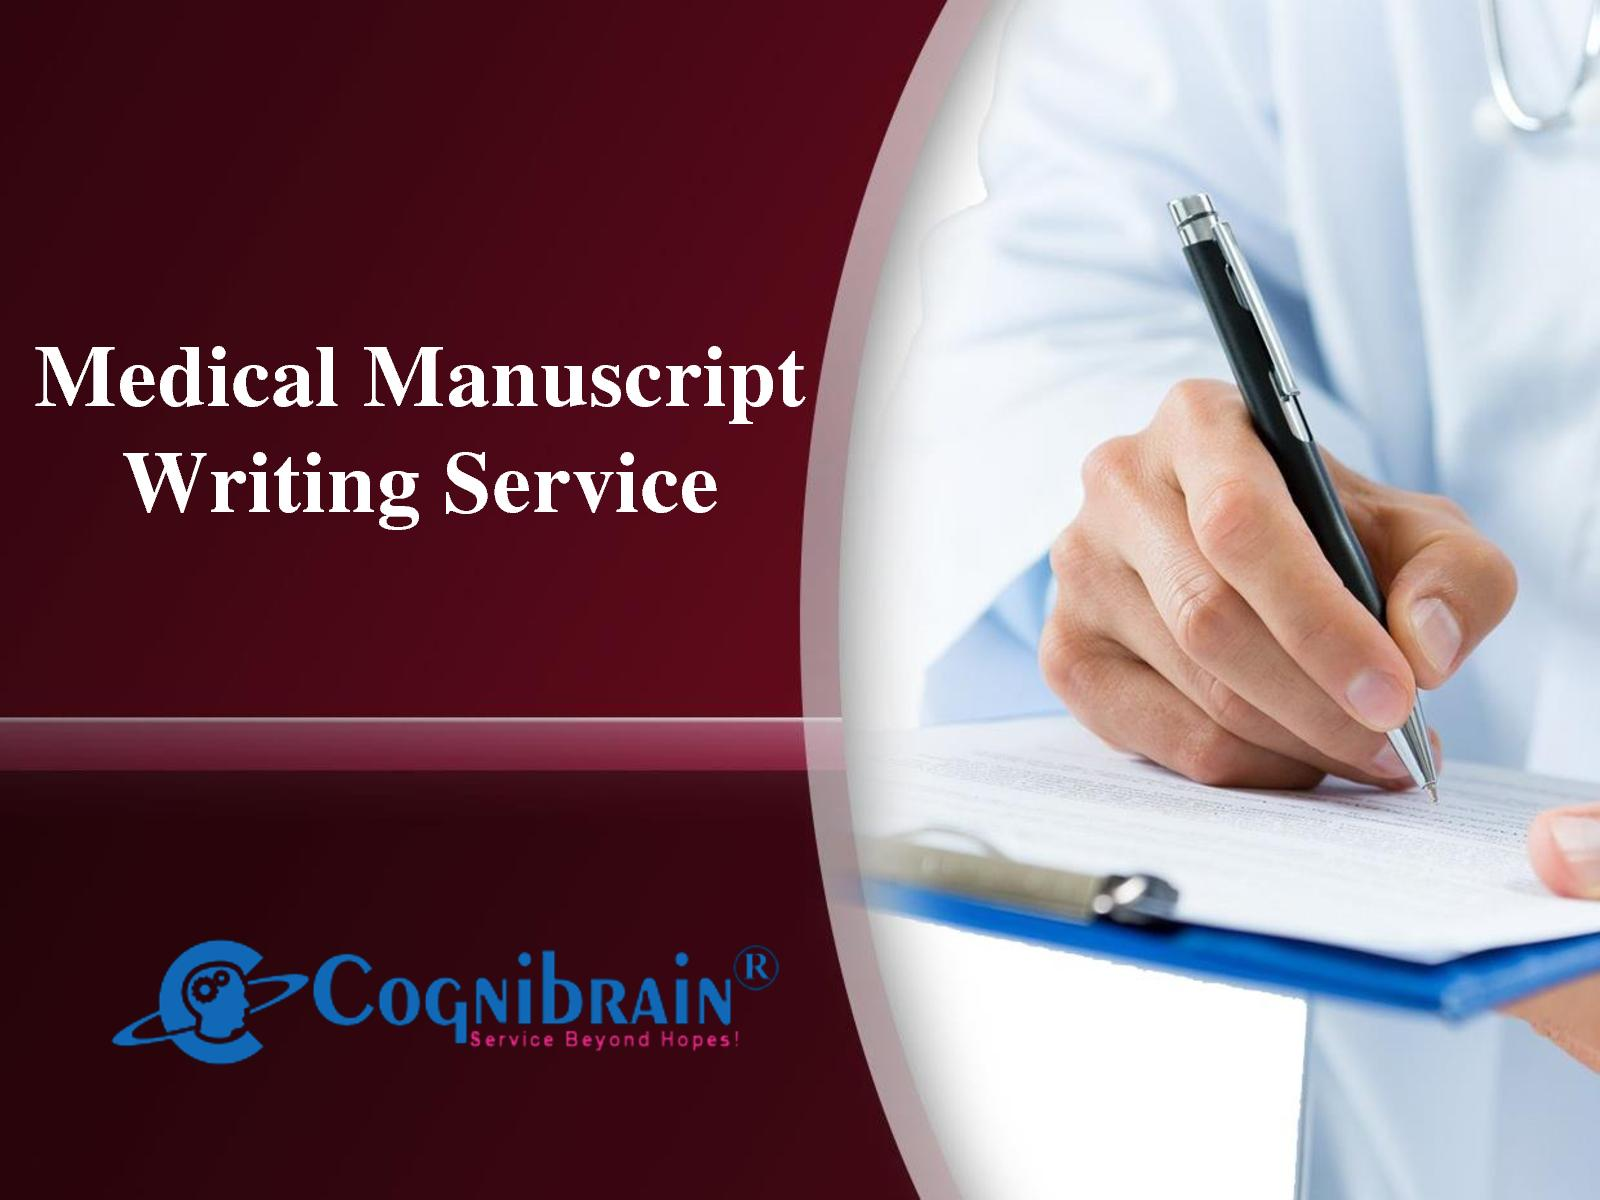 003 Researchs Writing Service Manuscript Services Outstanding Research Papers Paper In Chennai Reddit India Full